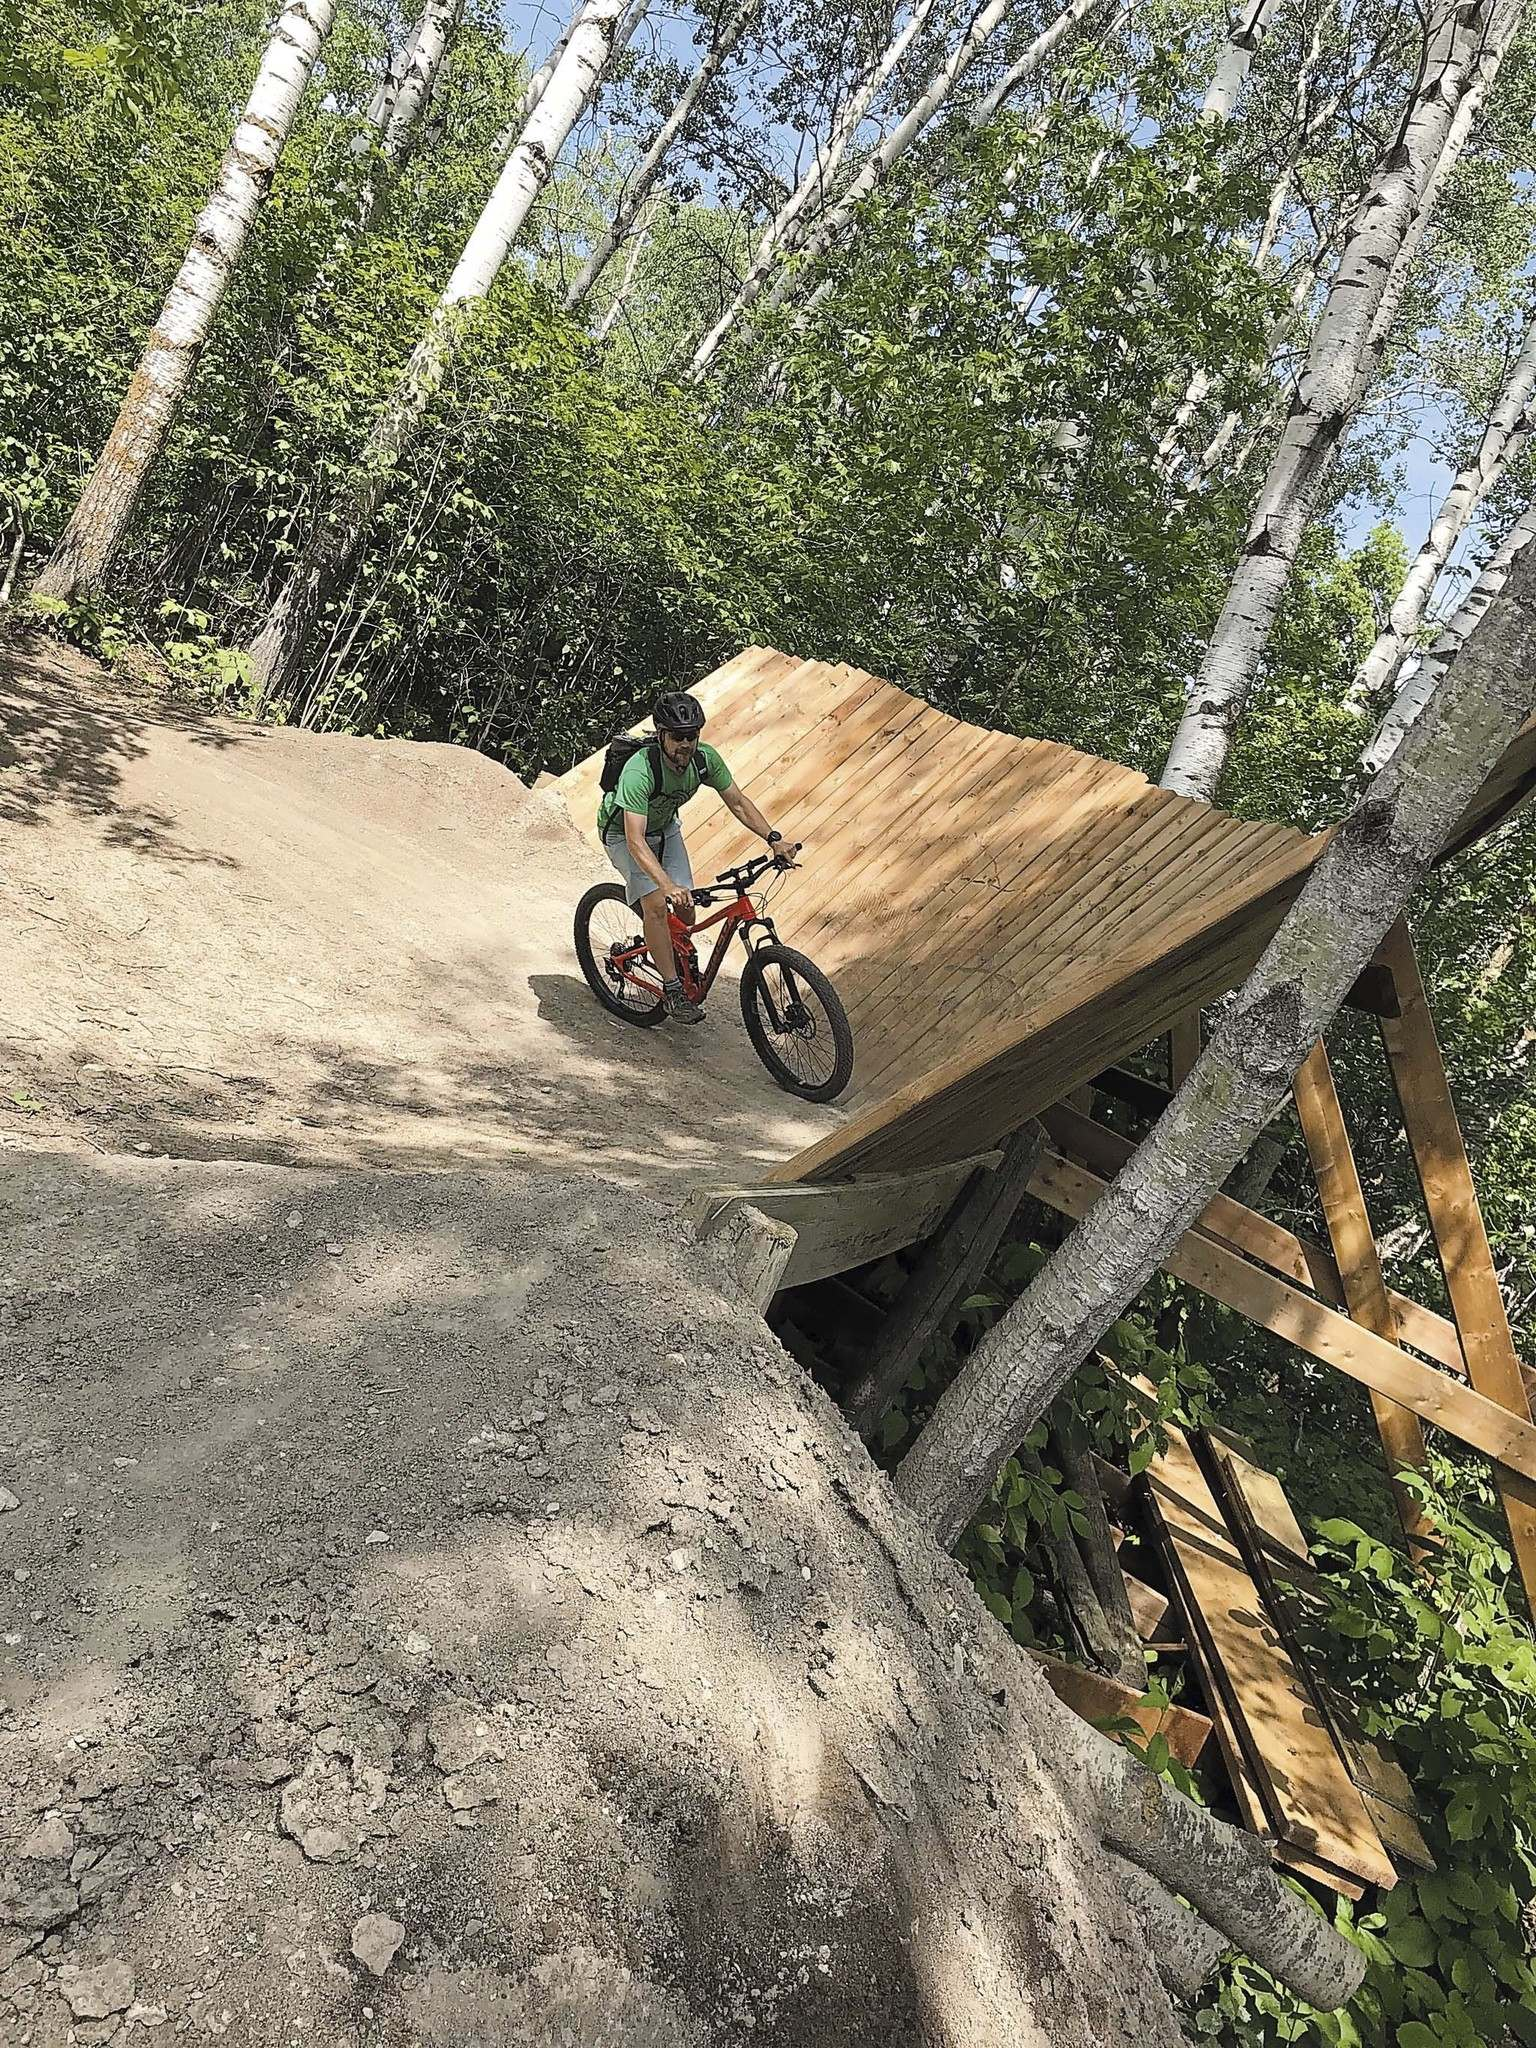 Clayton Swantontackles one of the wooden berms at Northgate.